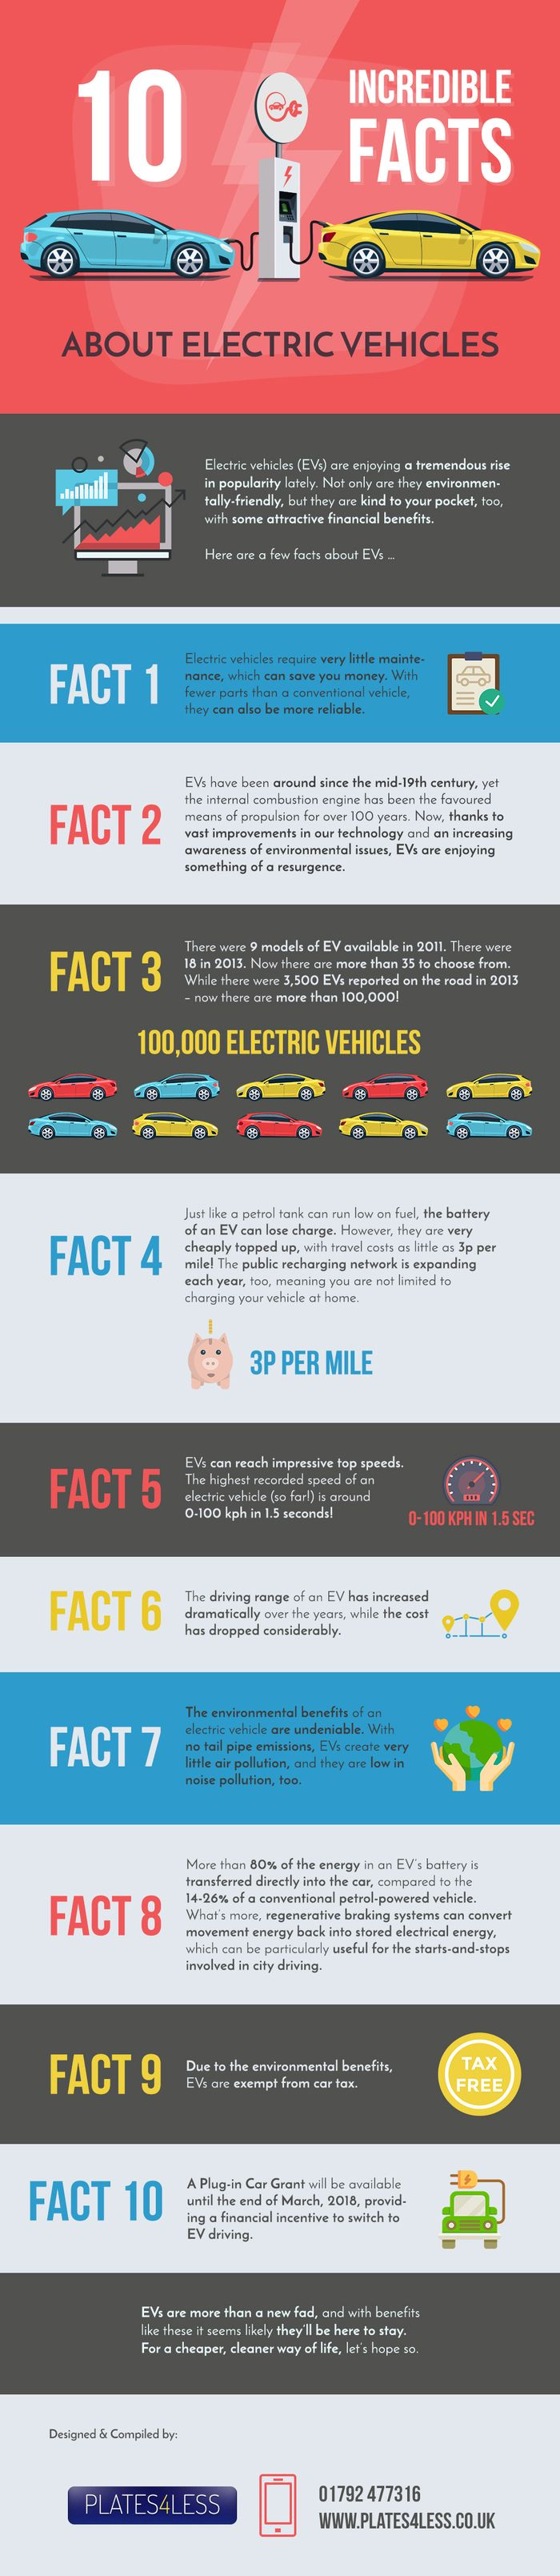 For More Information On Ev Facts And Stats Refer To The Infographic Below